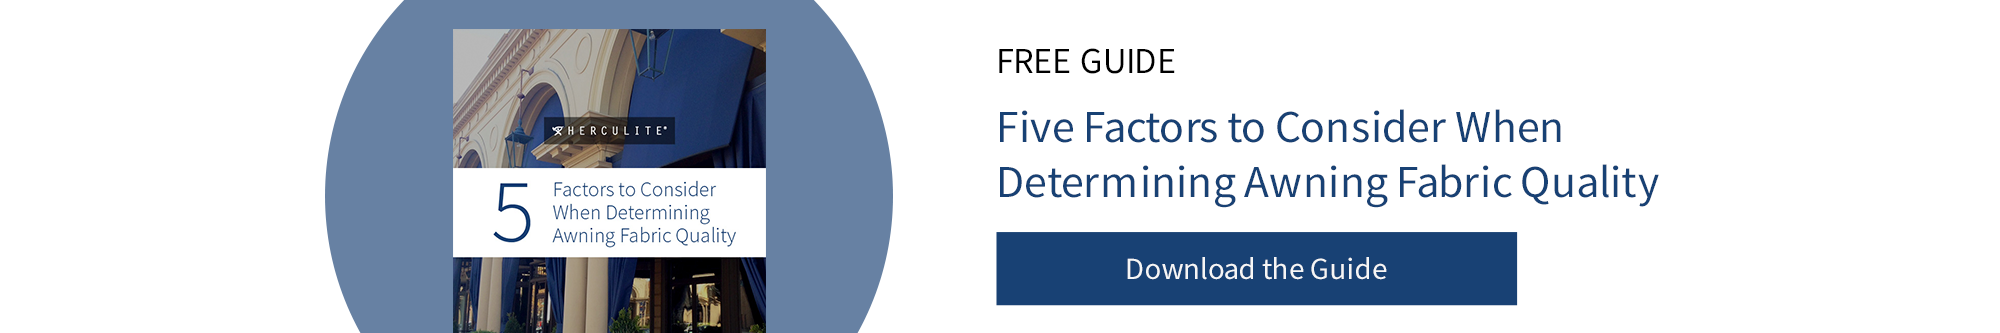 5 Factors to Consider Free Guide CTA